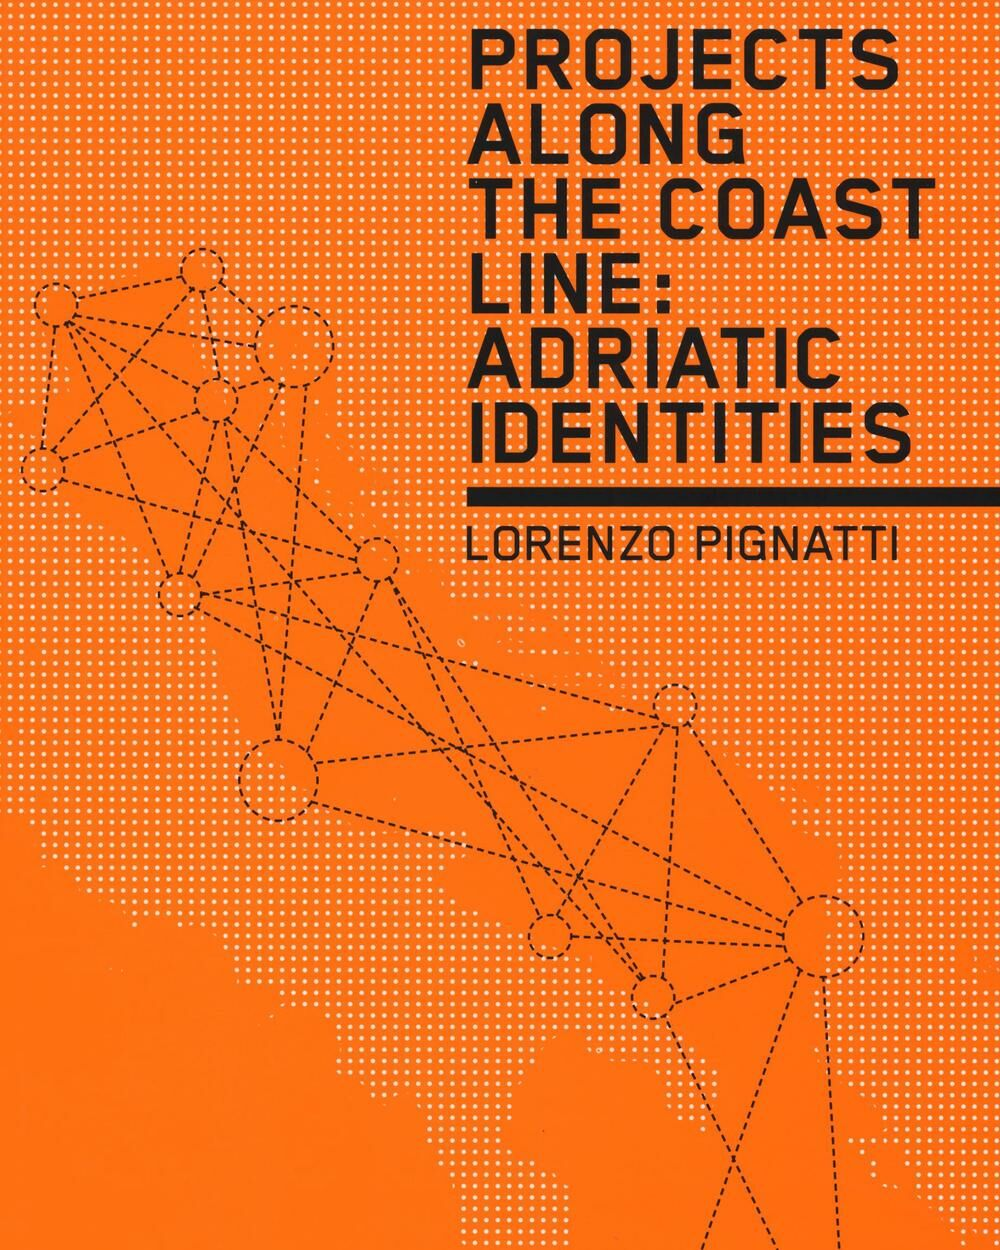 Projects along the coast line: adriatic identities